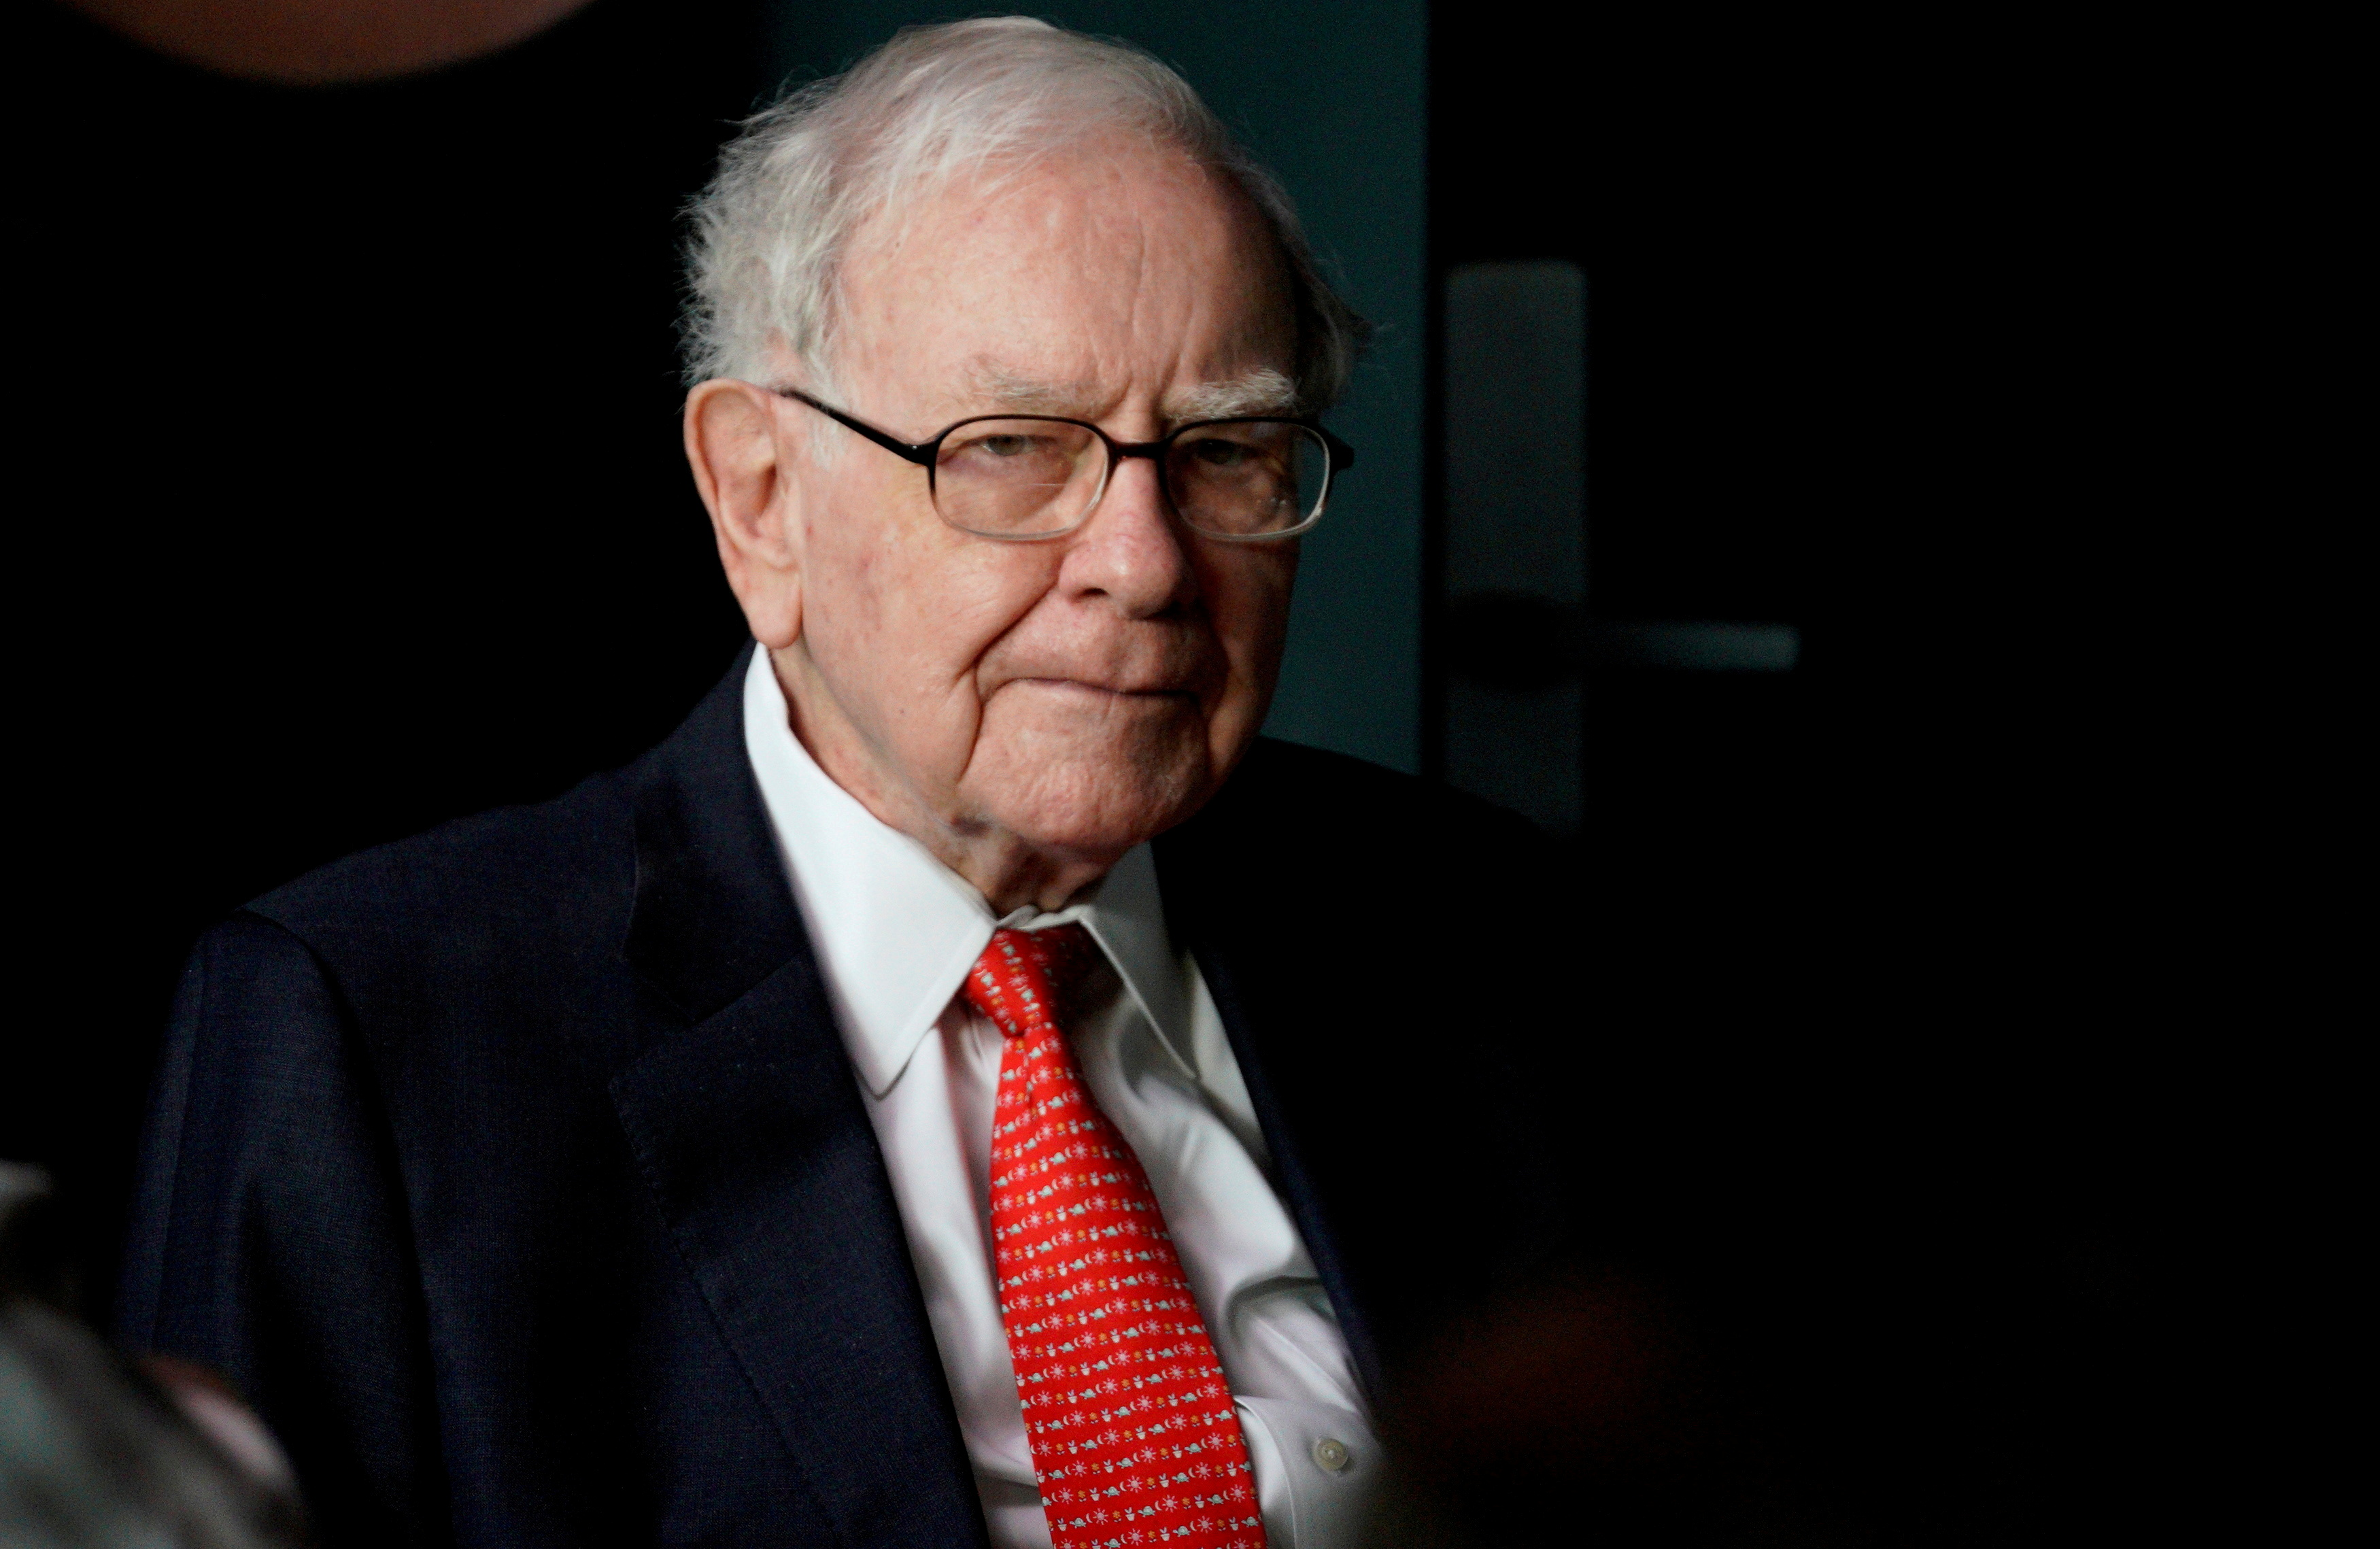 Warren Buffett, CEO of Berkshire Hathaway Inc, pauses while playing bridge as part of the company annual meeting weekend in Omaha, Nebraska U.S. May 6, 2018. REUTERS/Rick Wilking//File Photo